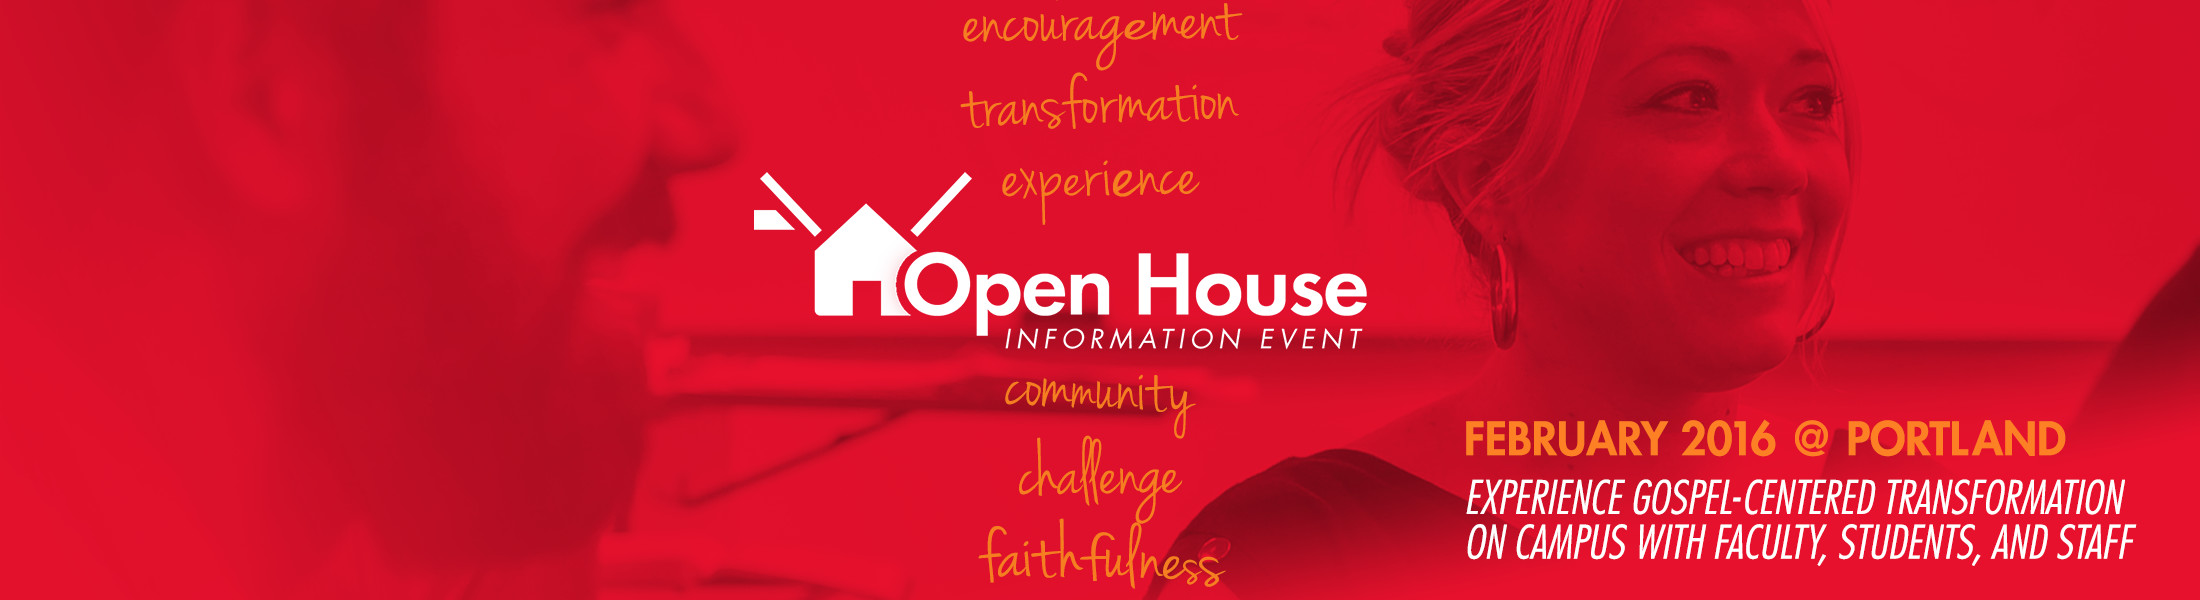 Open House Information Event at Western Seminary Portland Campus